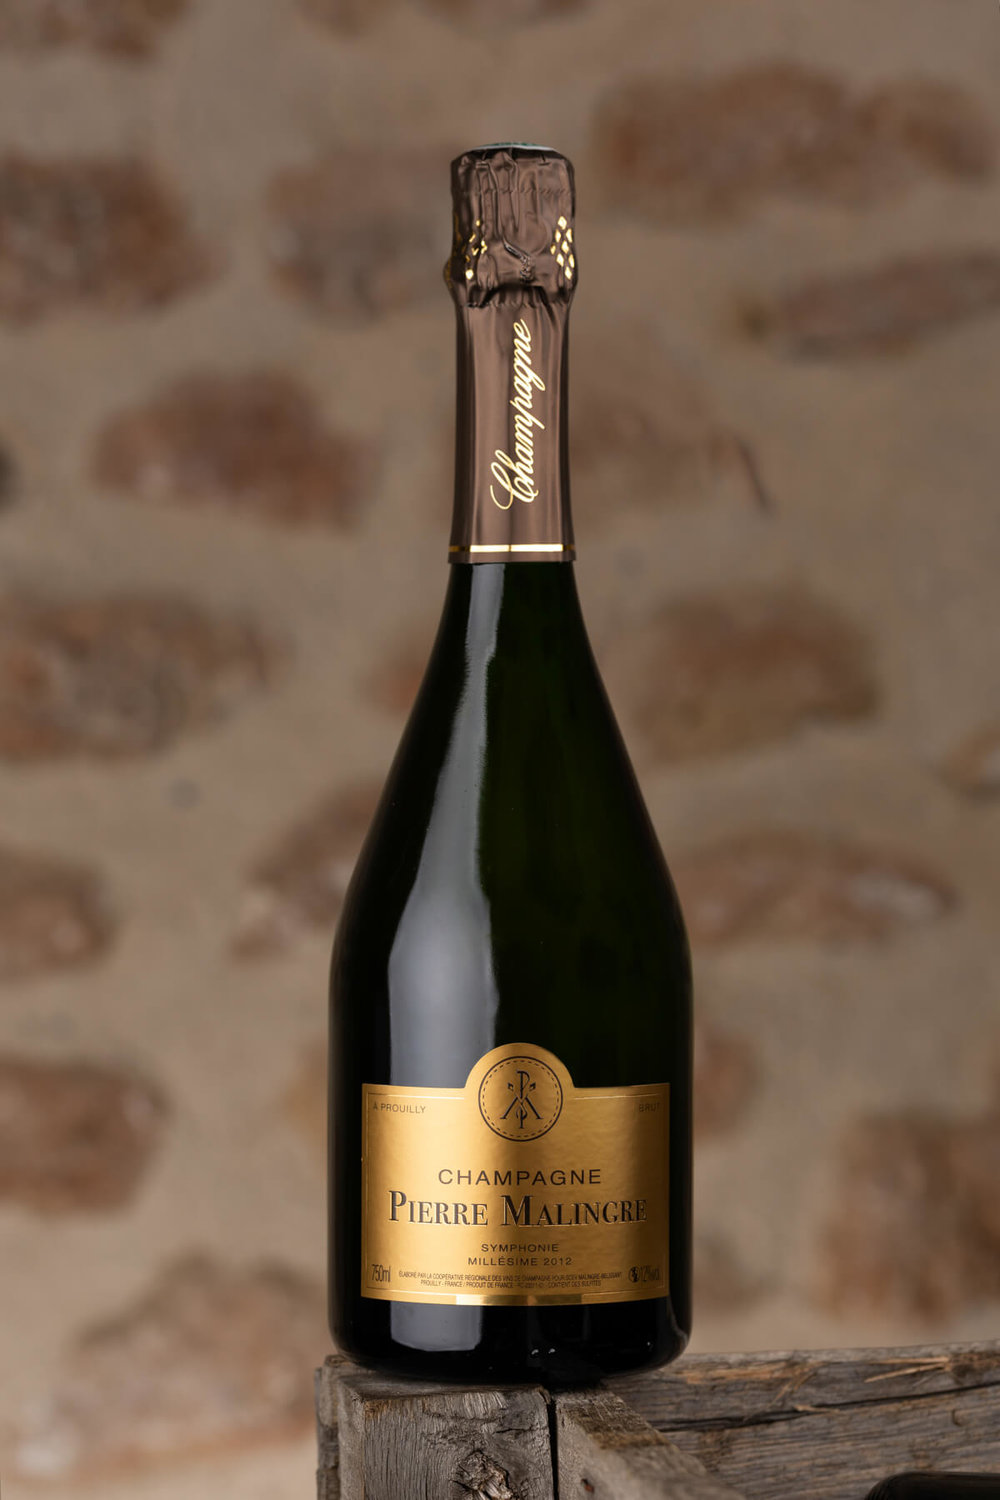 Photographe Champagne Epernay - Tristan Meunier - Champagne Malingre -13.jpg